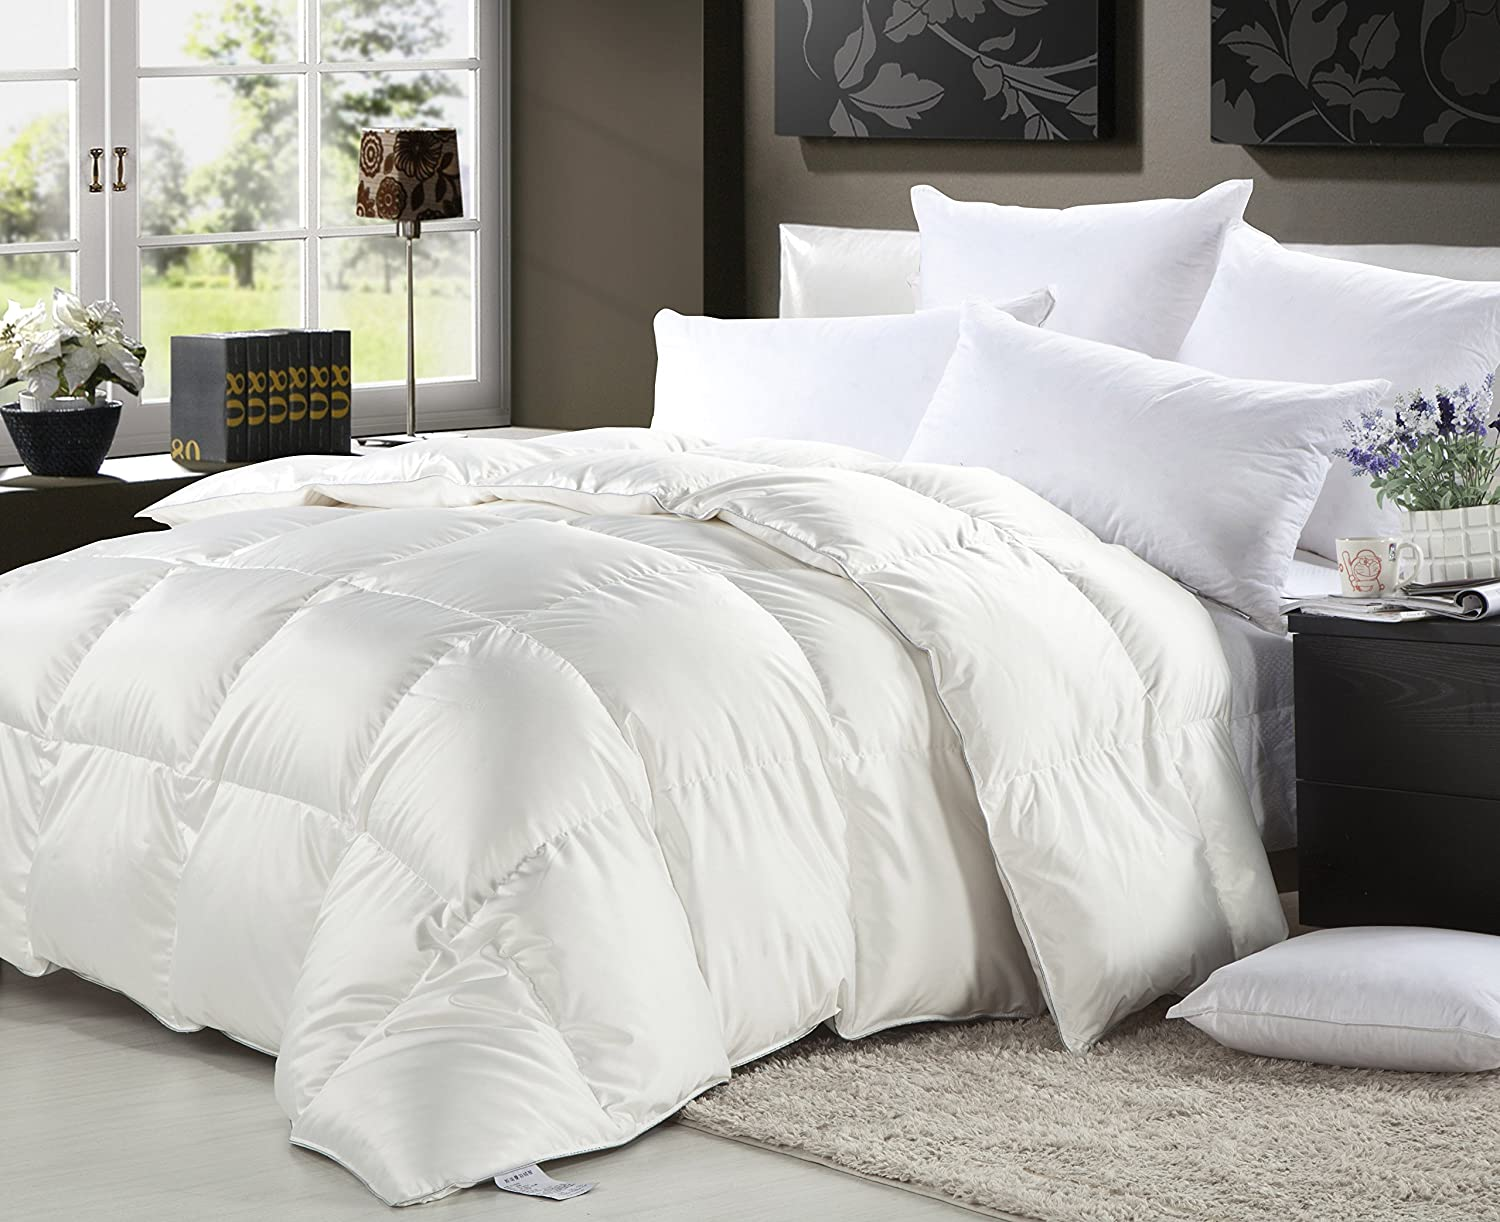 1000 Thread Count 100% Egyptian Cotton, FULL / QUEEN Size Baffle Box Design Medium Weight GOOSE DOWN Comforter, All Year, White Solid, 750 FP, 50 oz